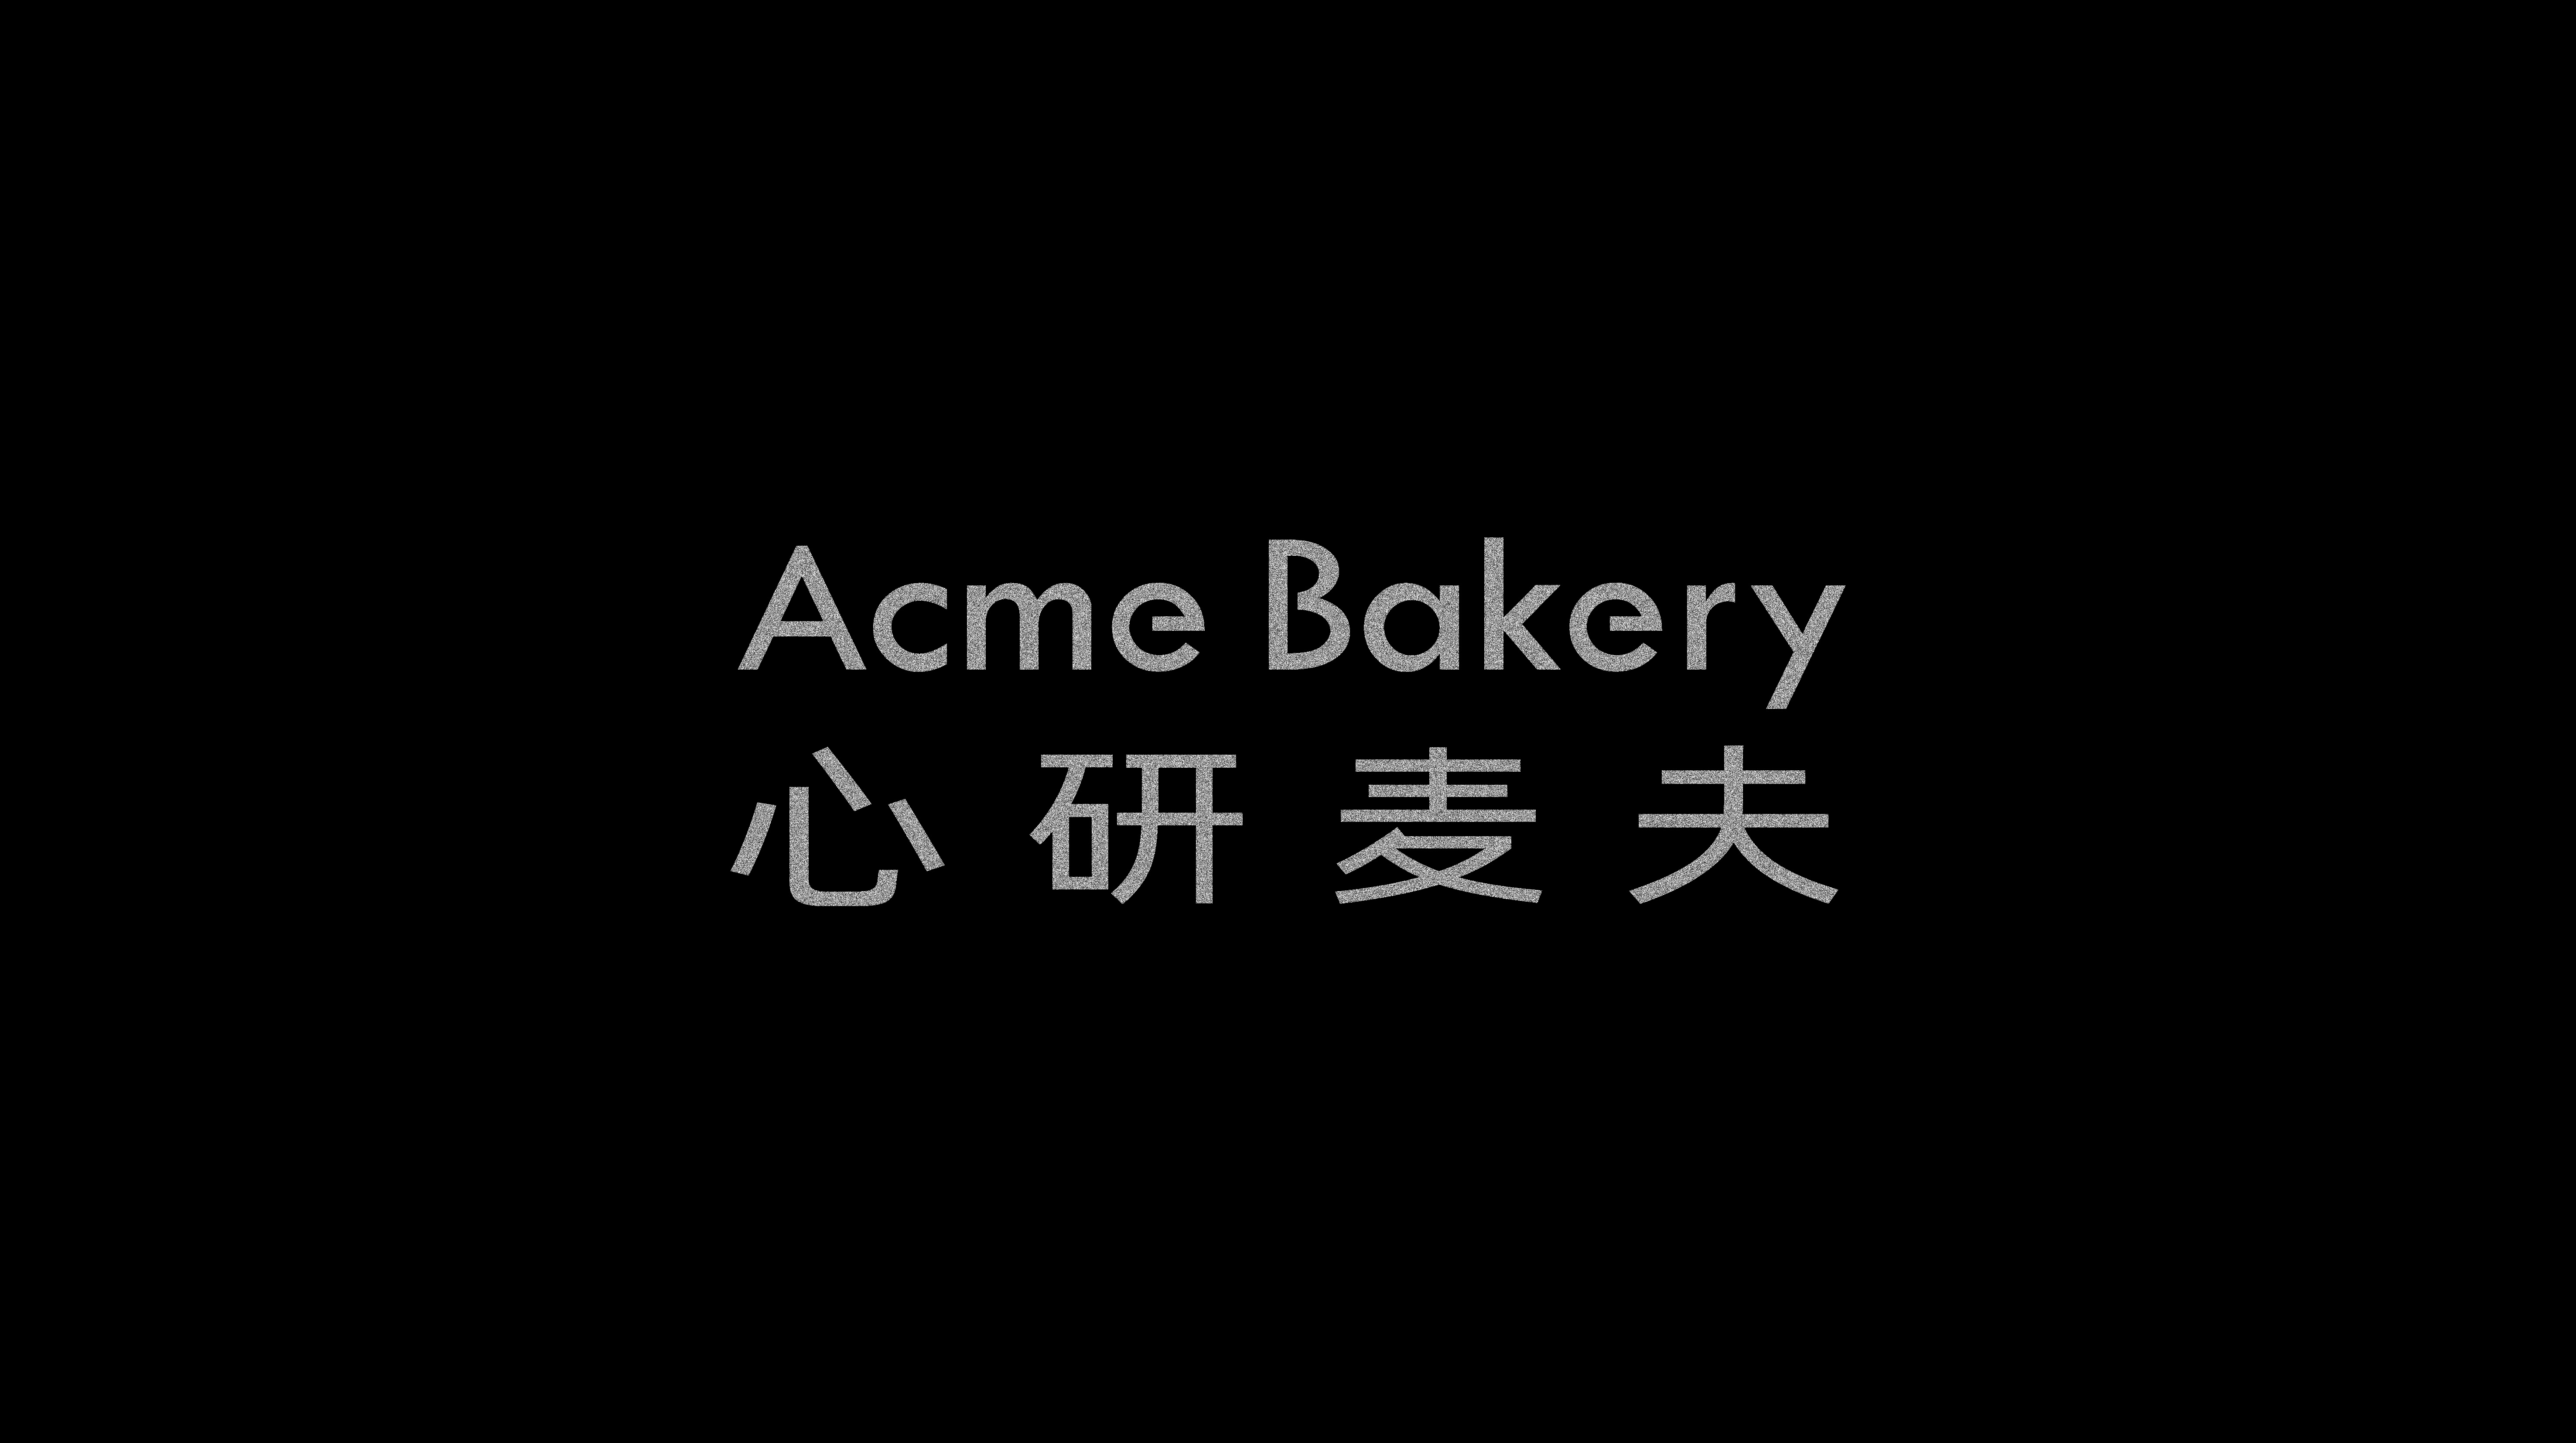 Some Chinese commercial font designs